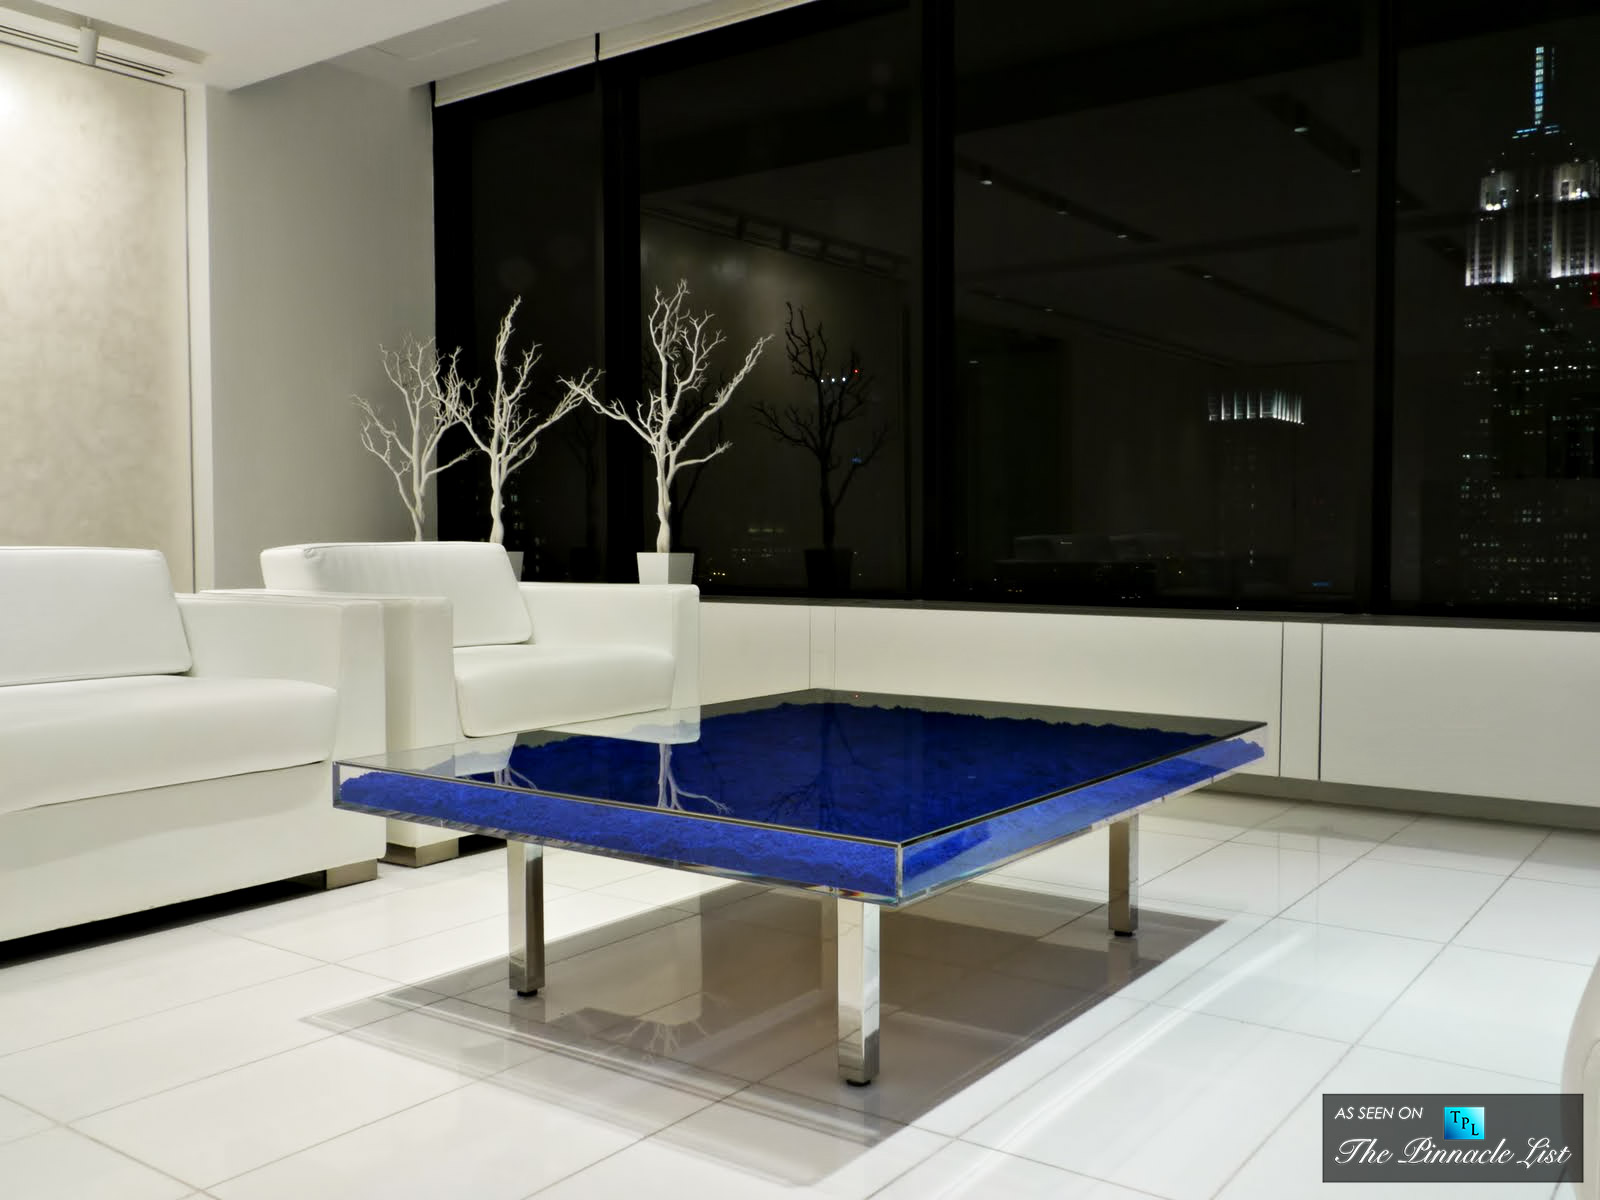 Table Bleue - Yves Klein Private Collection - New York City